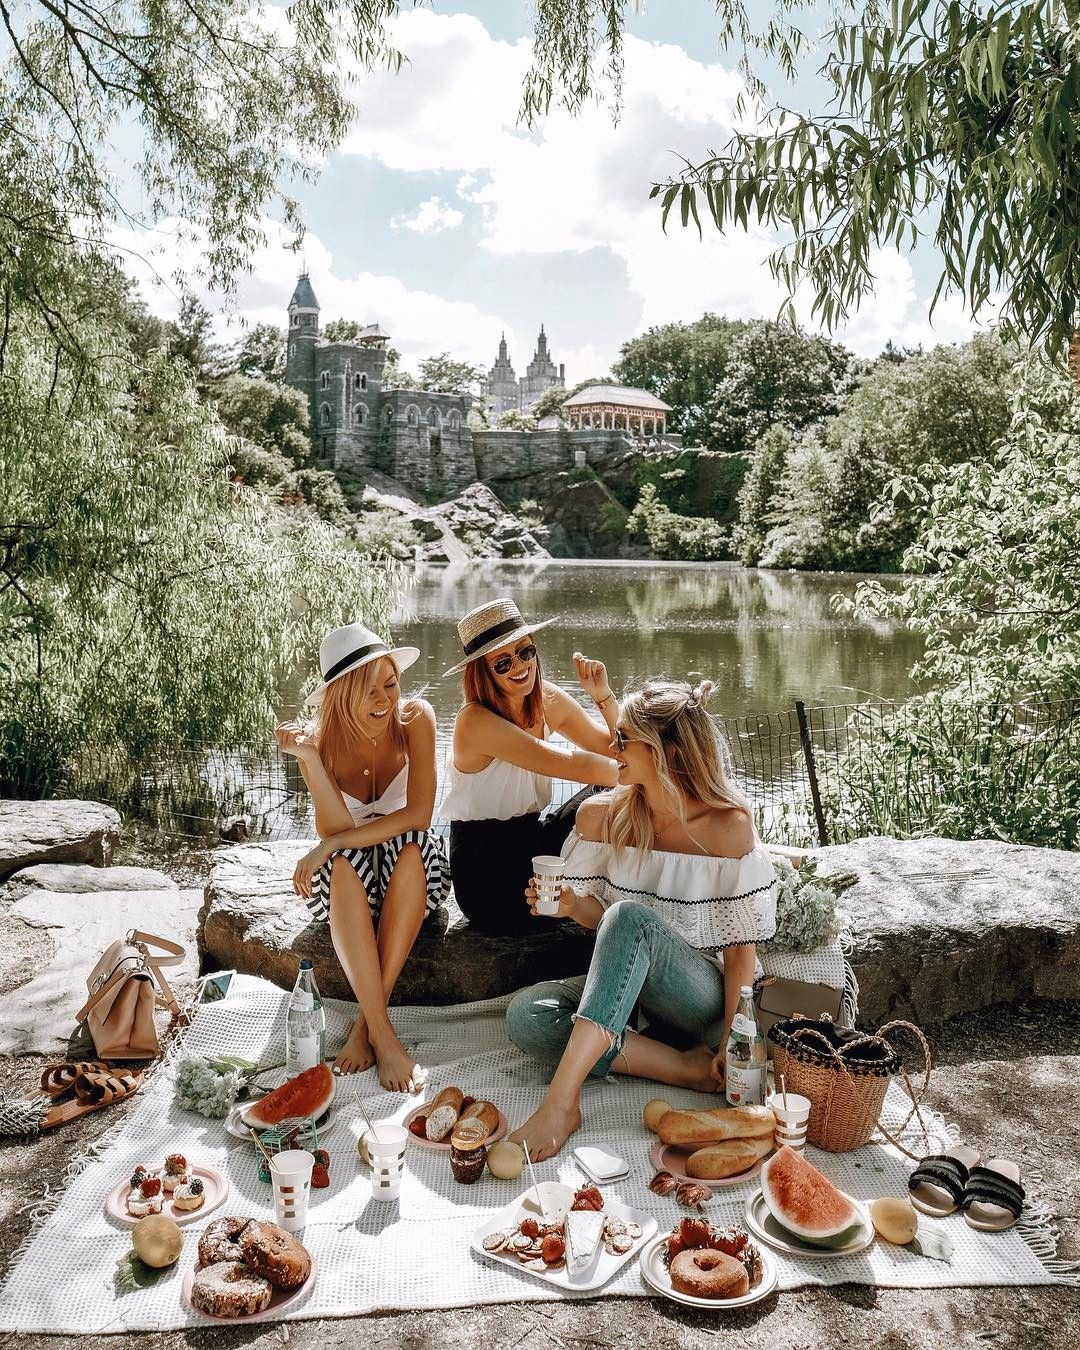 Laurie Ferraro (@theruecollective) on Instagram: Central Park Picnic #mygirl